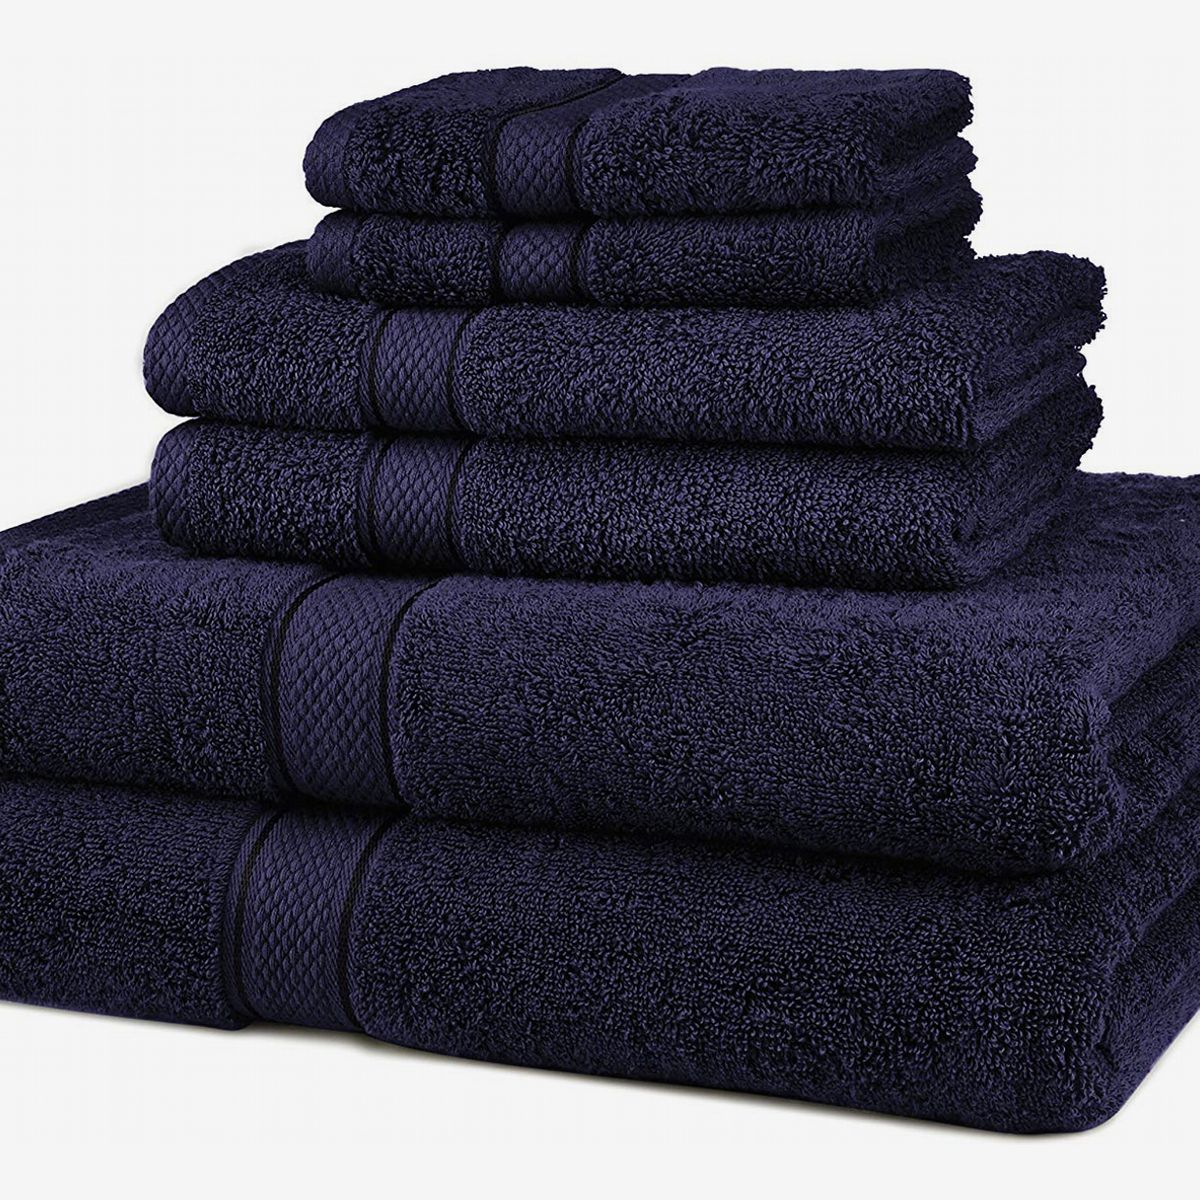 18 Best Bath Towels 2021 The Strategist New York Magazine